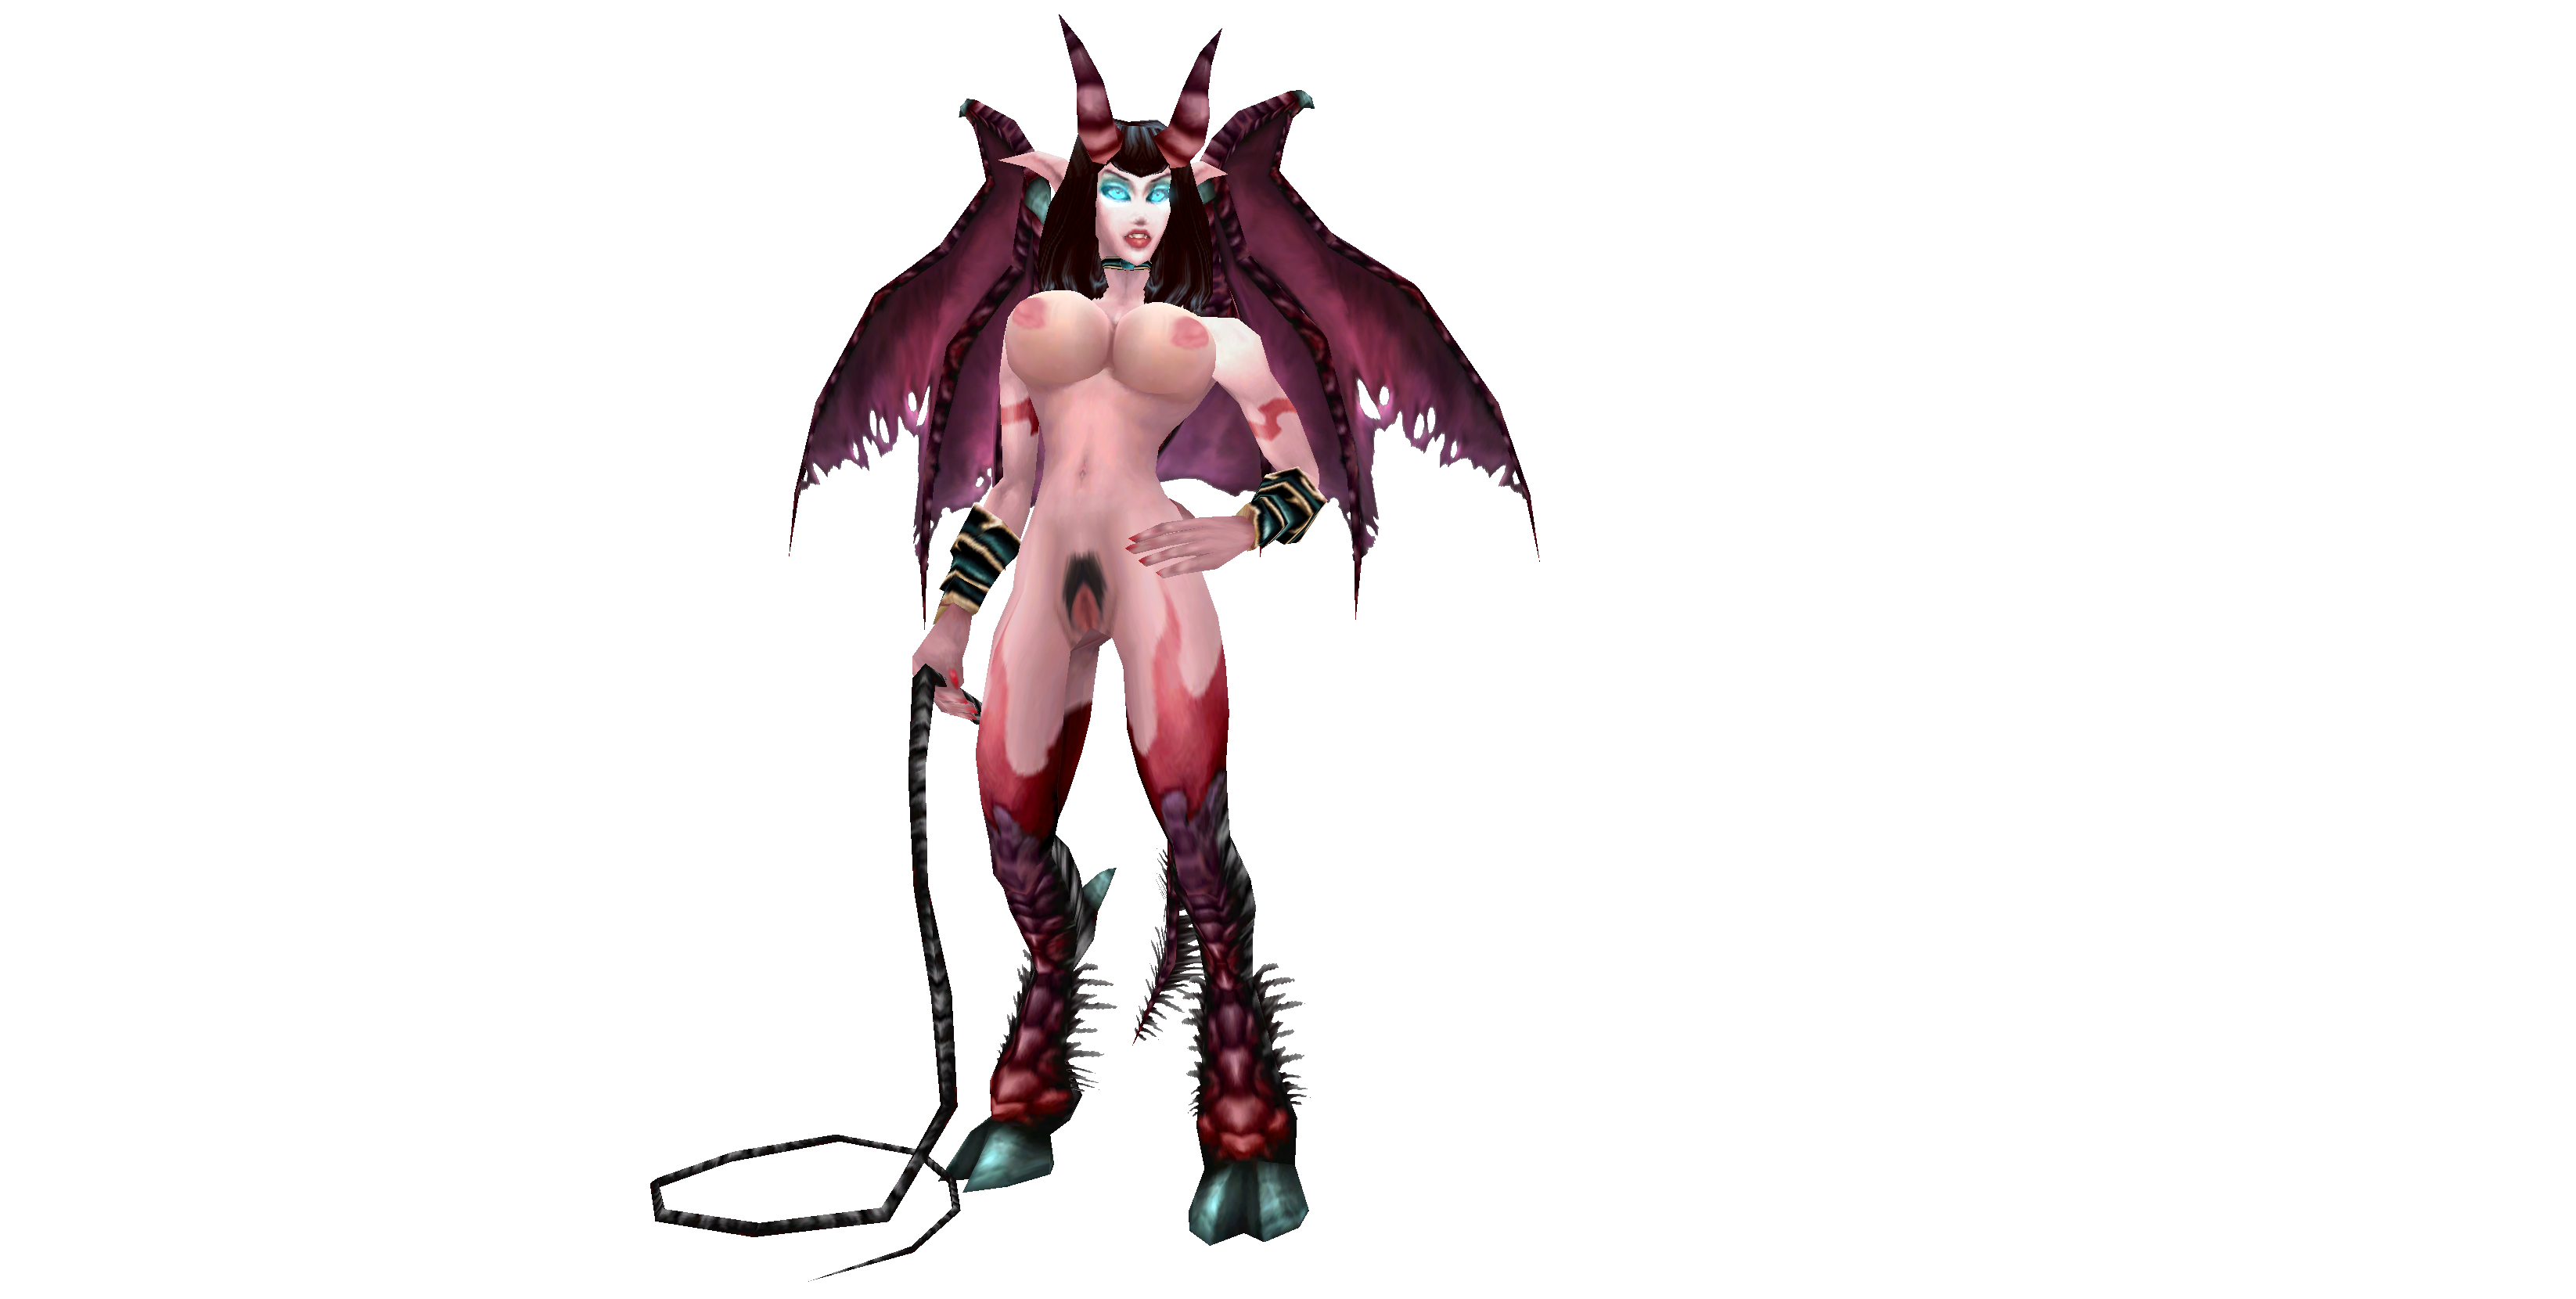 Warcraft succubus hentsi porncraft pictures